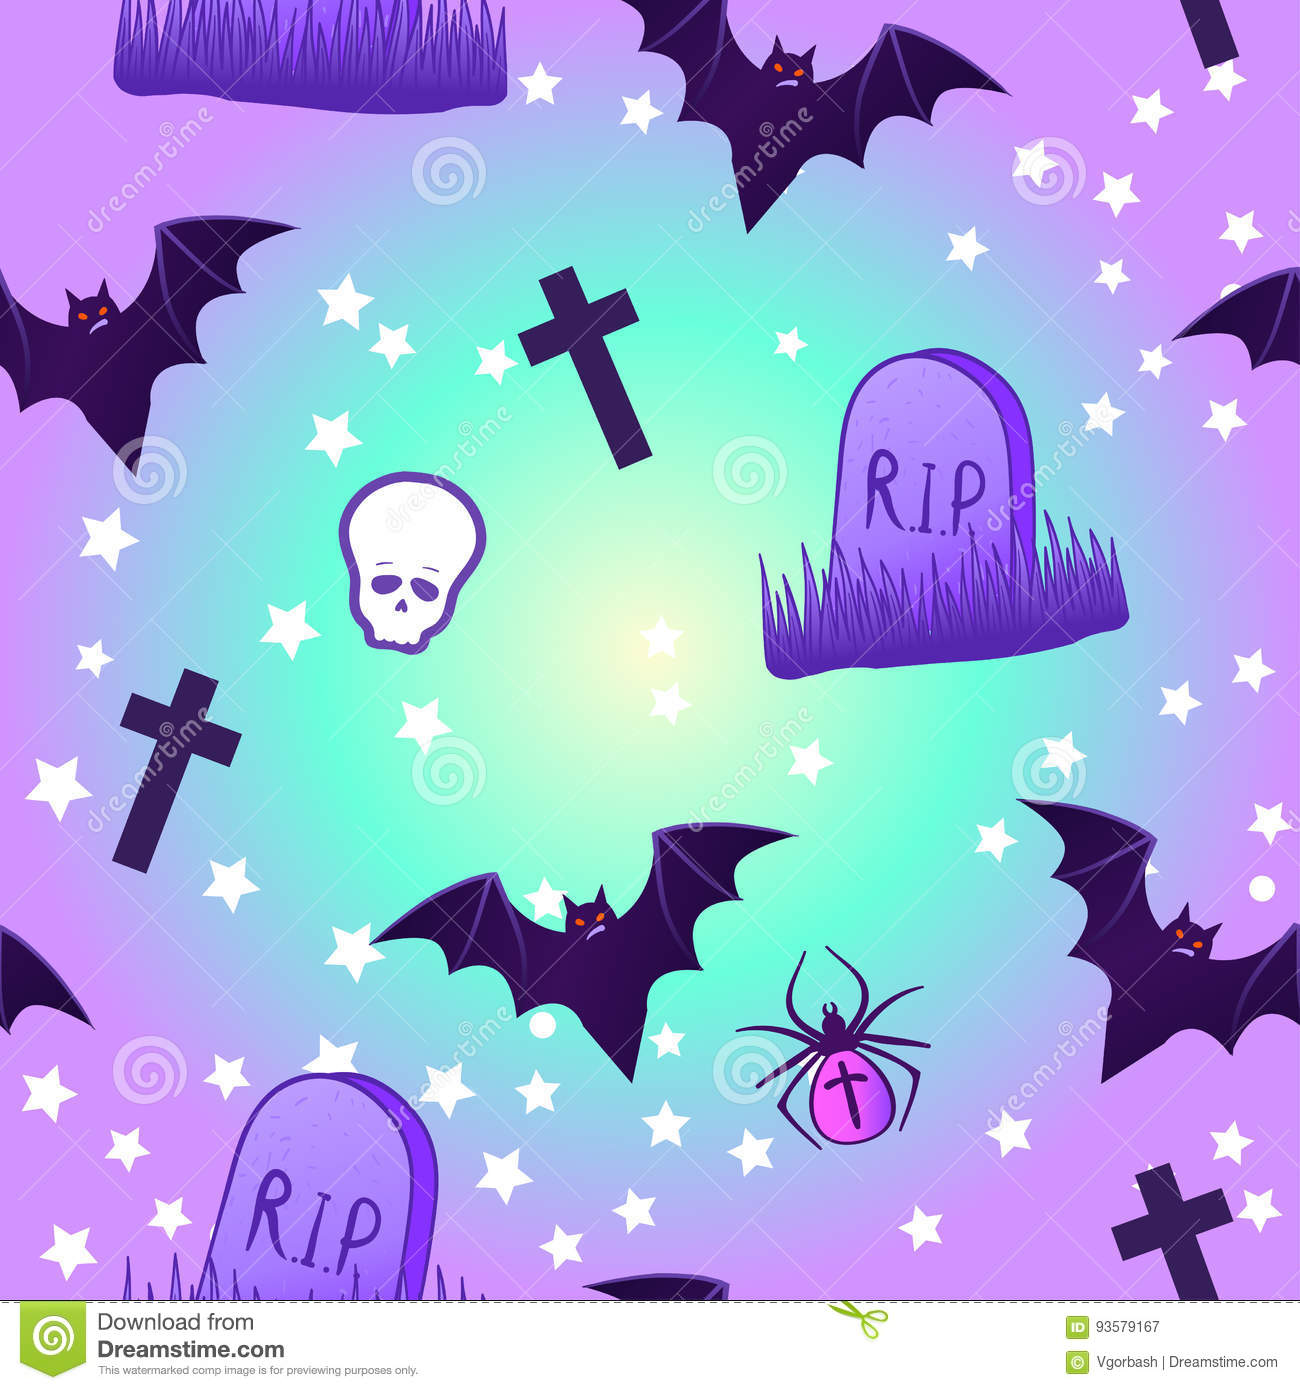 Wonderful Wallpaper Halloween Pastel - kawaii-funny-spooky-seamless-pattern-halloween-wrapping-paper-b-background-neon-pastel-colors-cute-gothic-style-vanilla-rainbow-93579167  Perfect Image Reference_14618.jpg